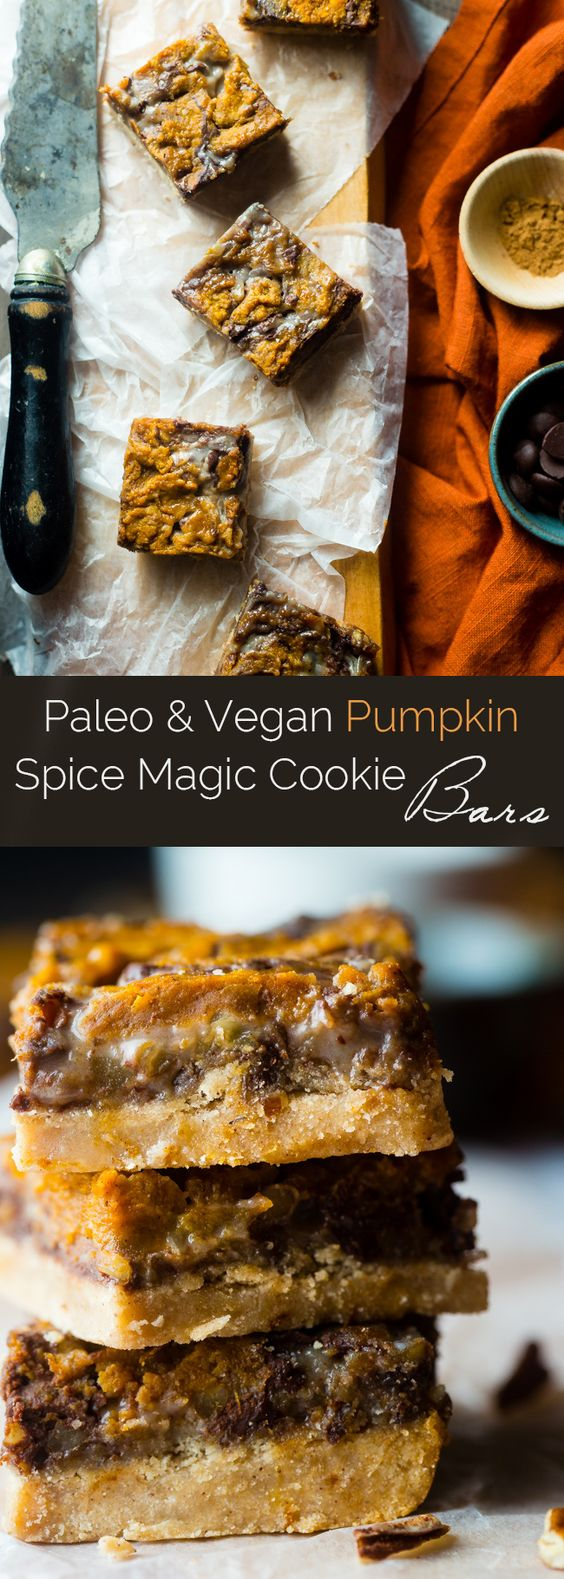 pumpkin-spice-magic-cookie-bars-paleo-vegan-gluten-free